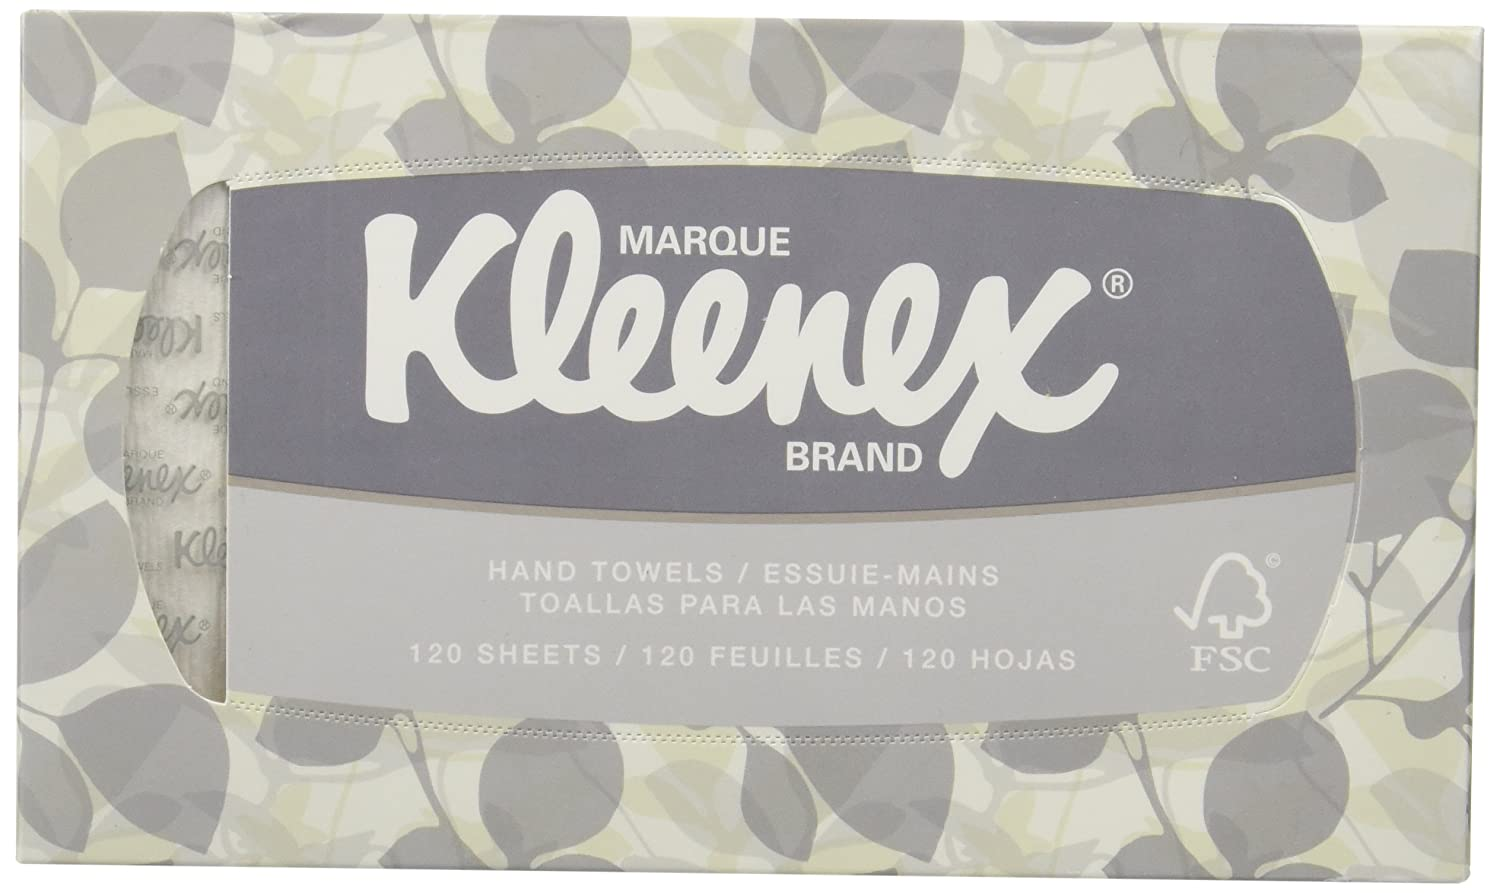 Amazon.com: KLEENEX Pop-Up Box Hand Towels, Paper, 9 x 10-1/2, 120/pack: Industrial & Scientific